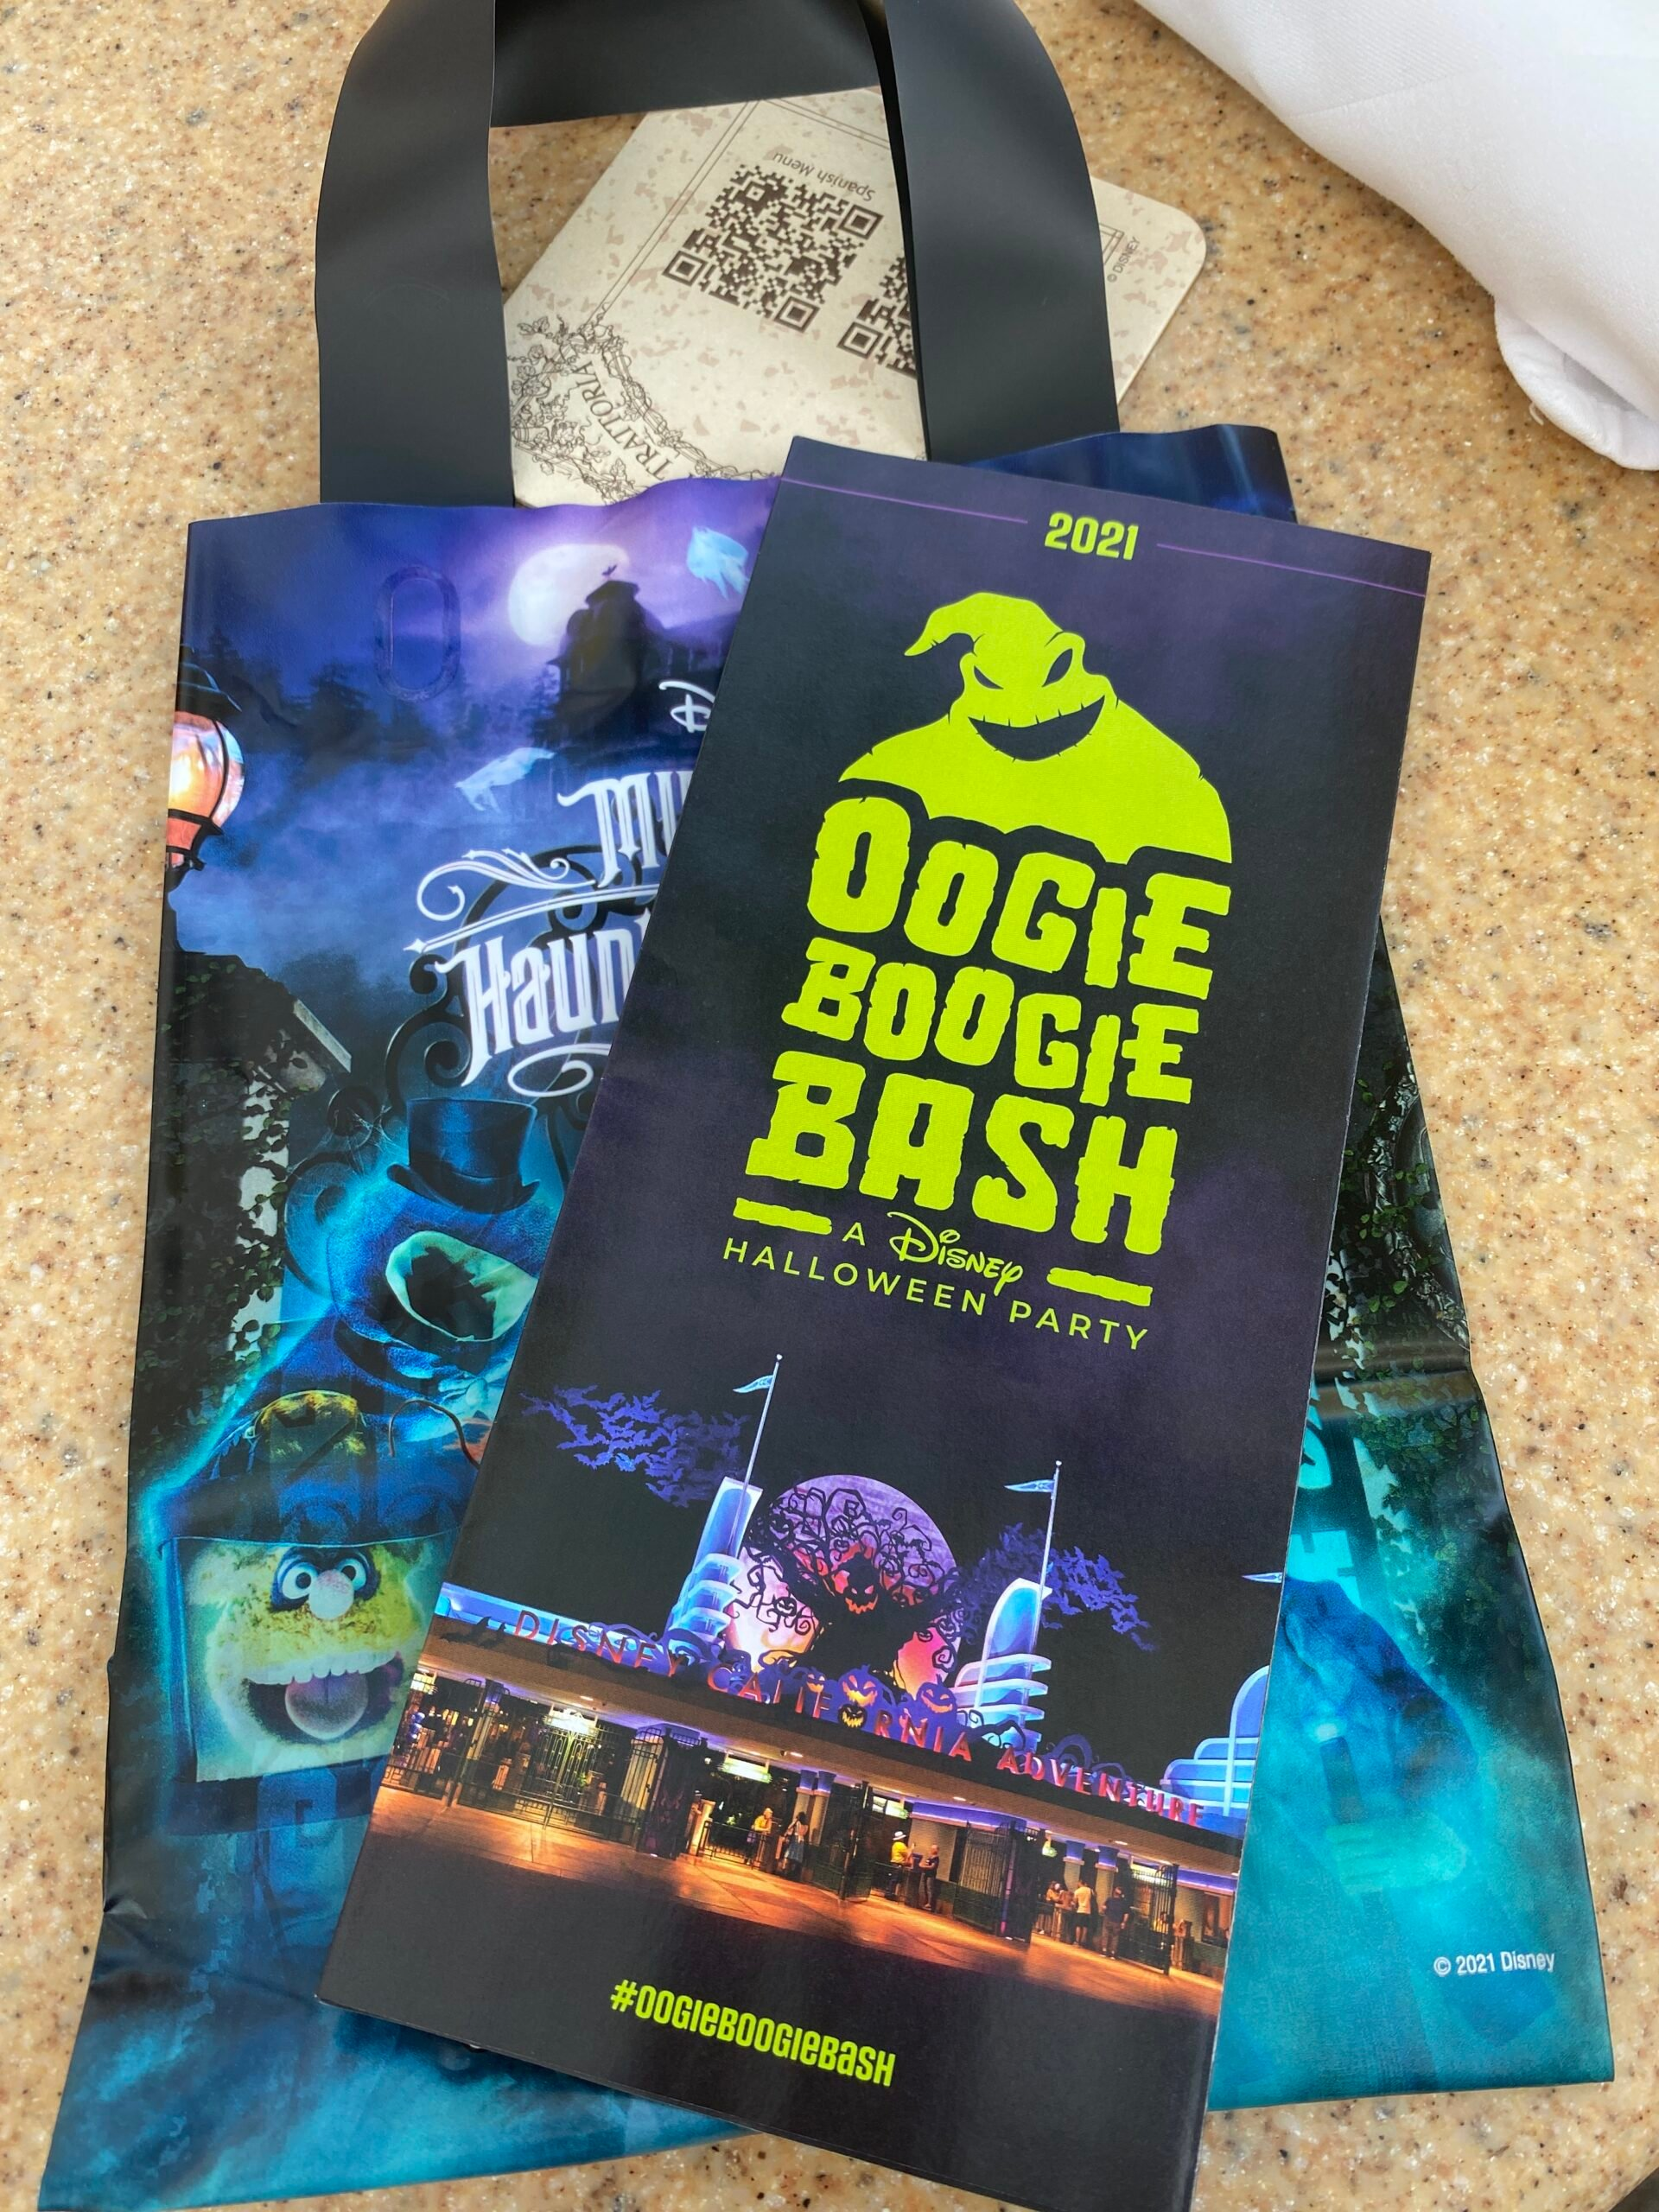 Oogie Boogie Bash guide